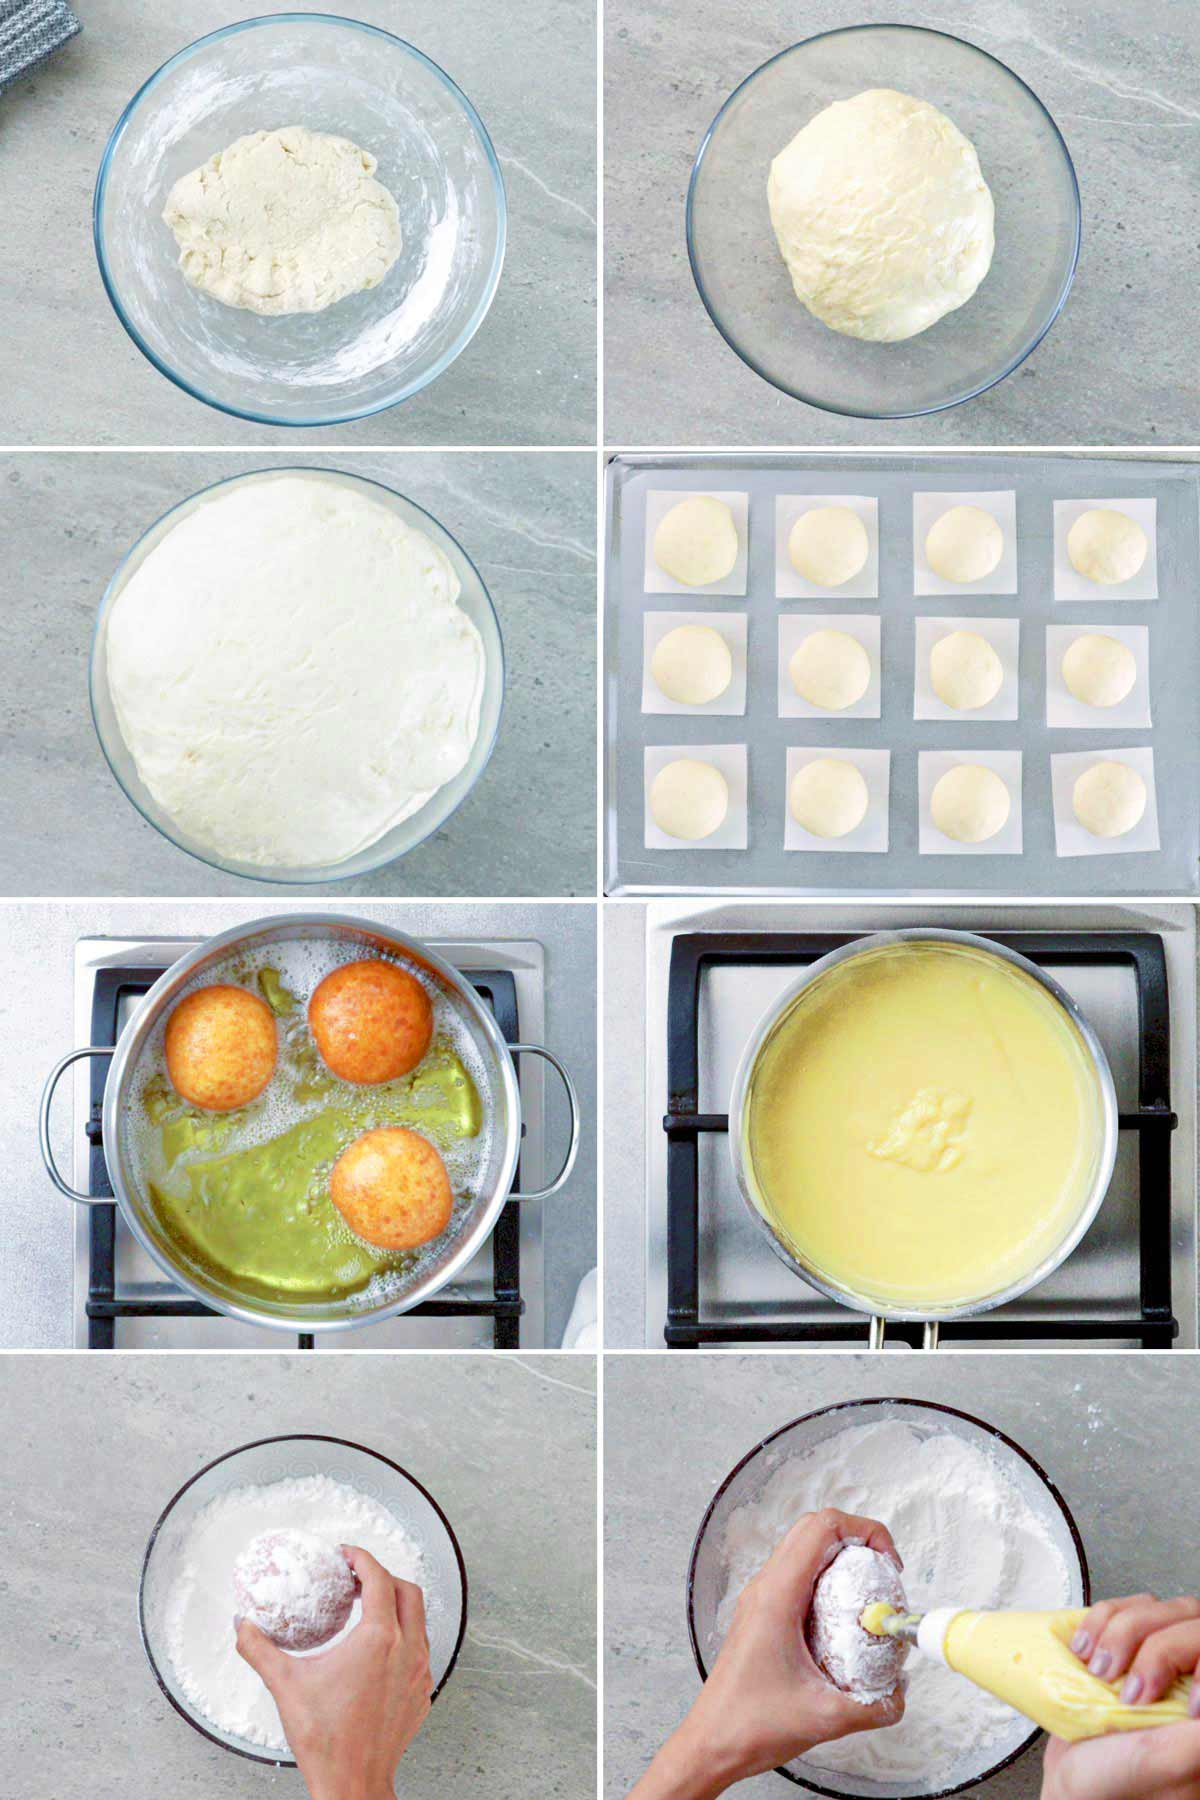 How to make bavarian donuts.